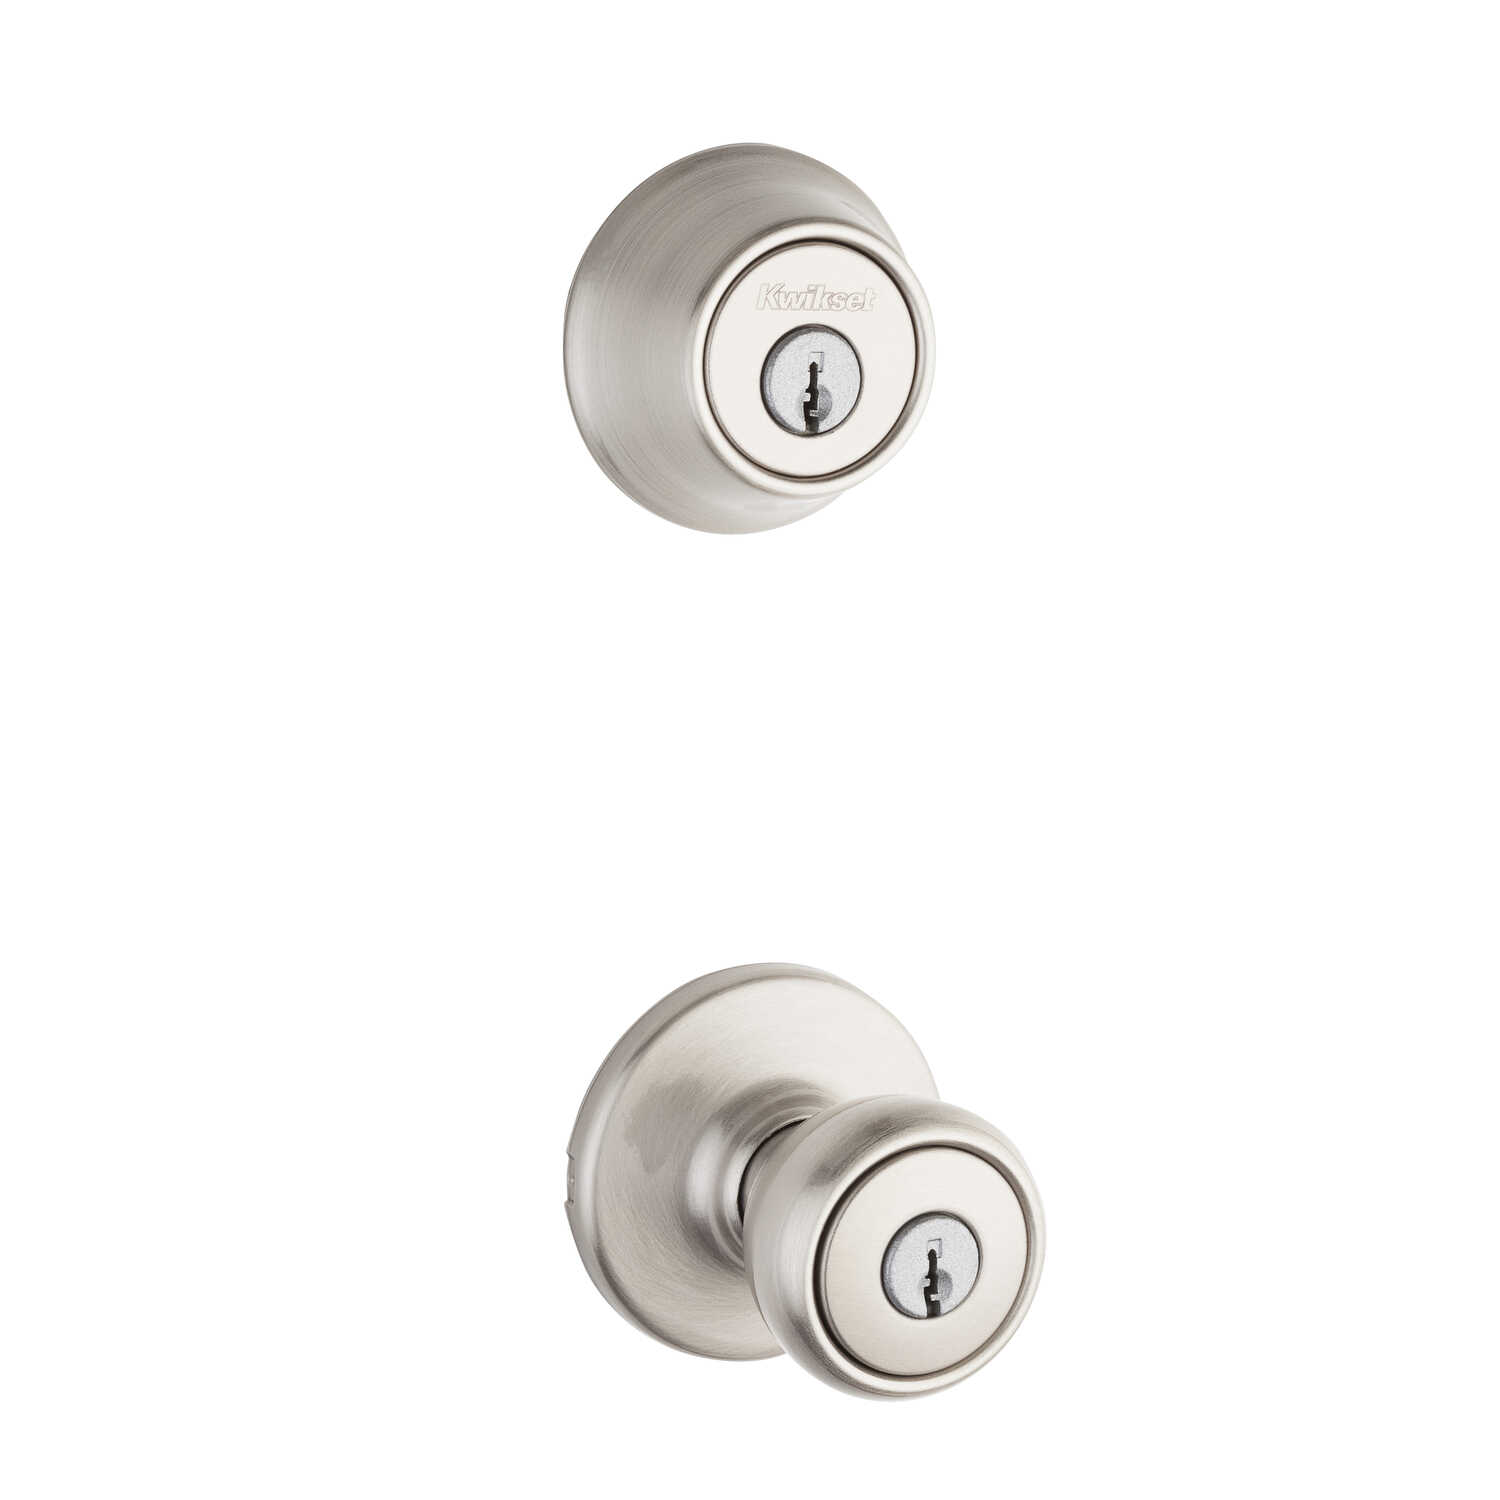 Kwikset  Tylo  Satin Nickel  Steel  Entry Knob and Single Cylinder Deadbolt  ANSI/BHMA Grade 3  1-3/